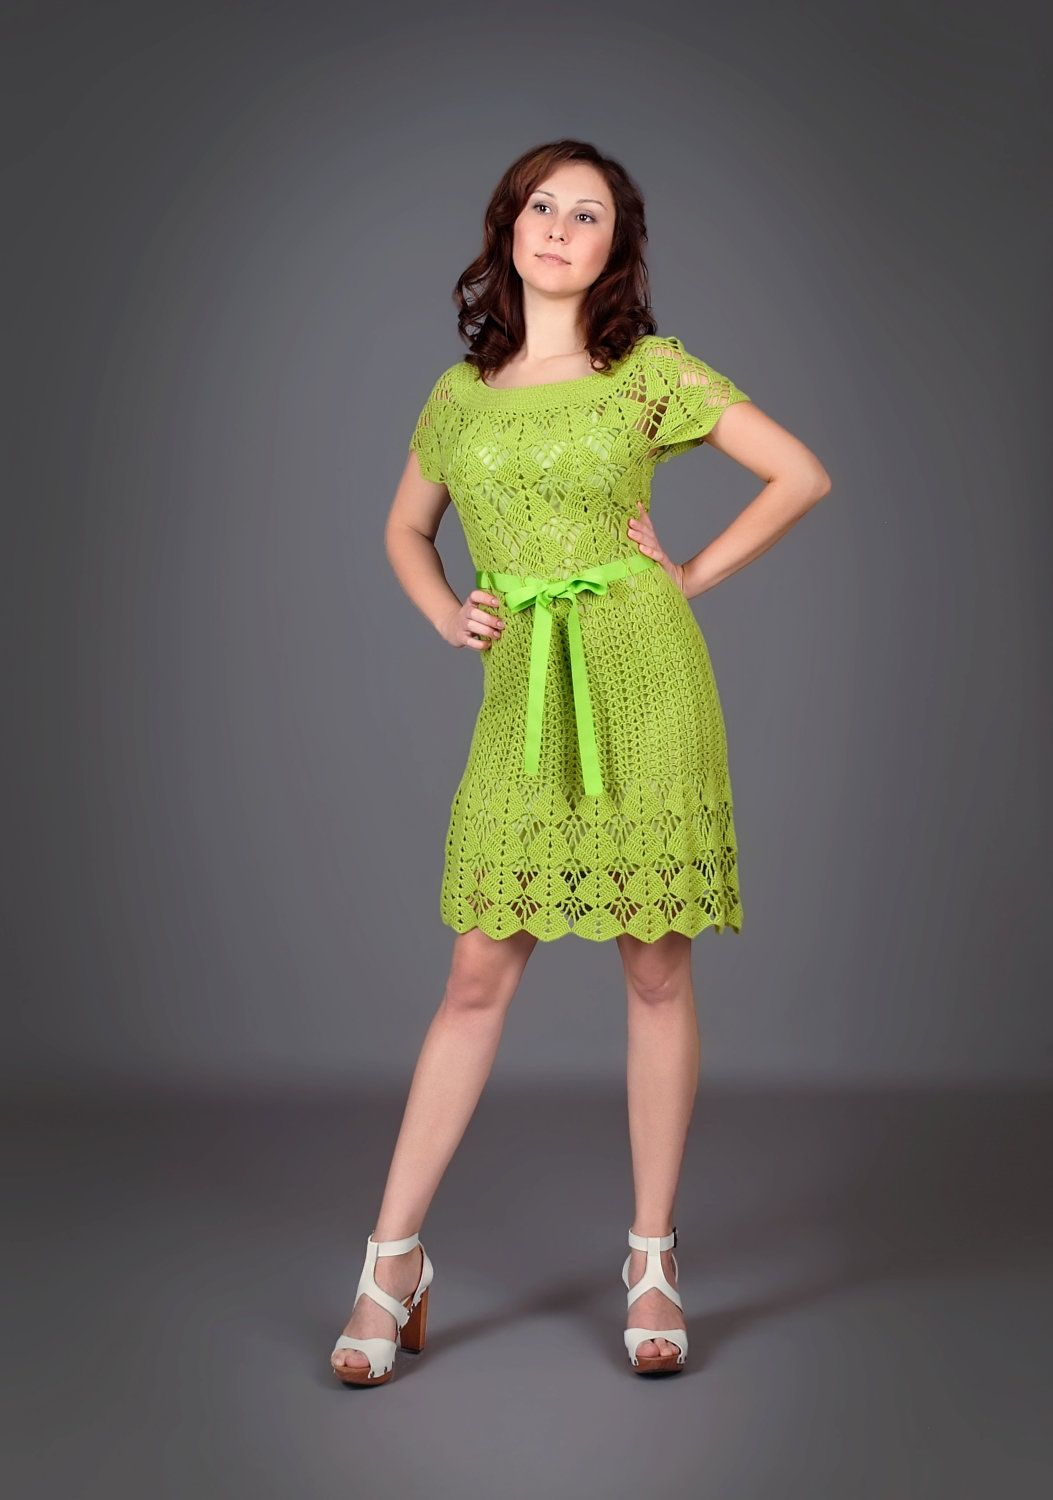 Green yellow spring-summer exclusive crochet dress via Etsy.